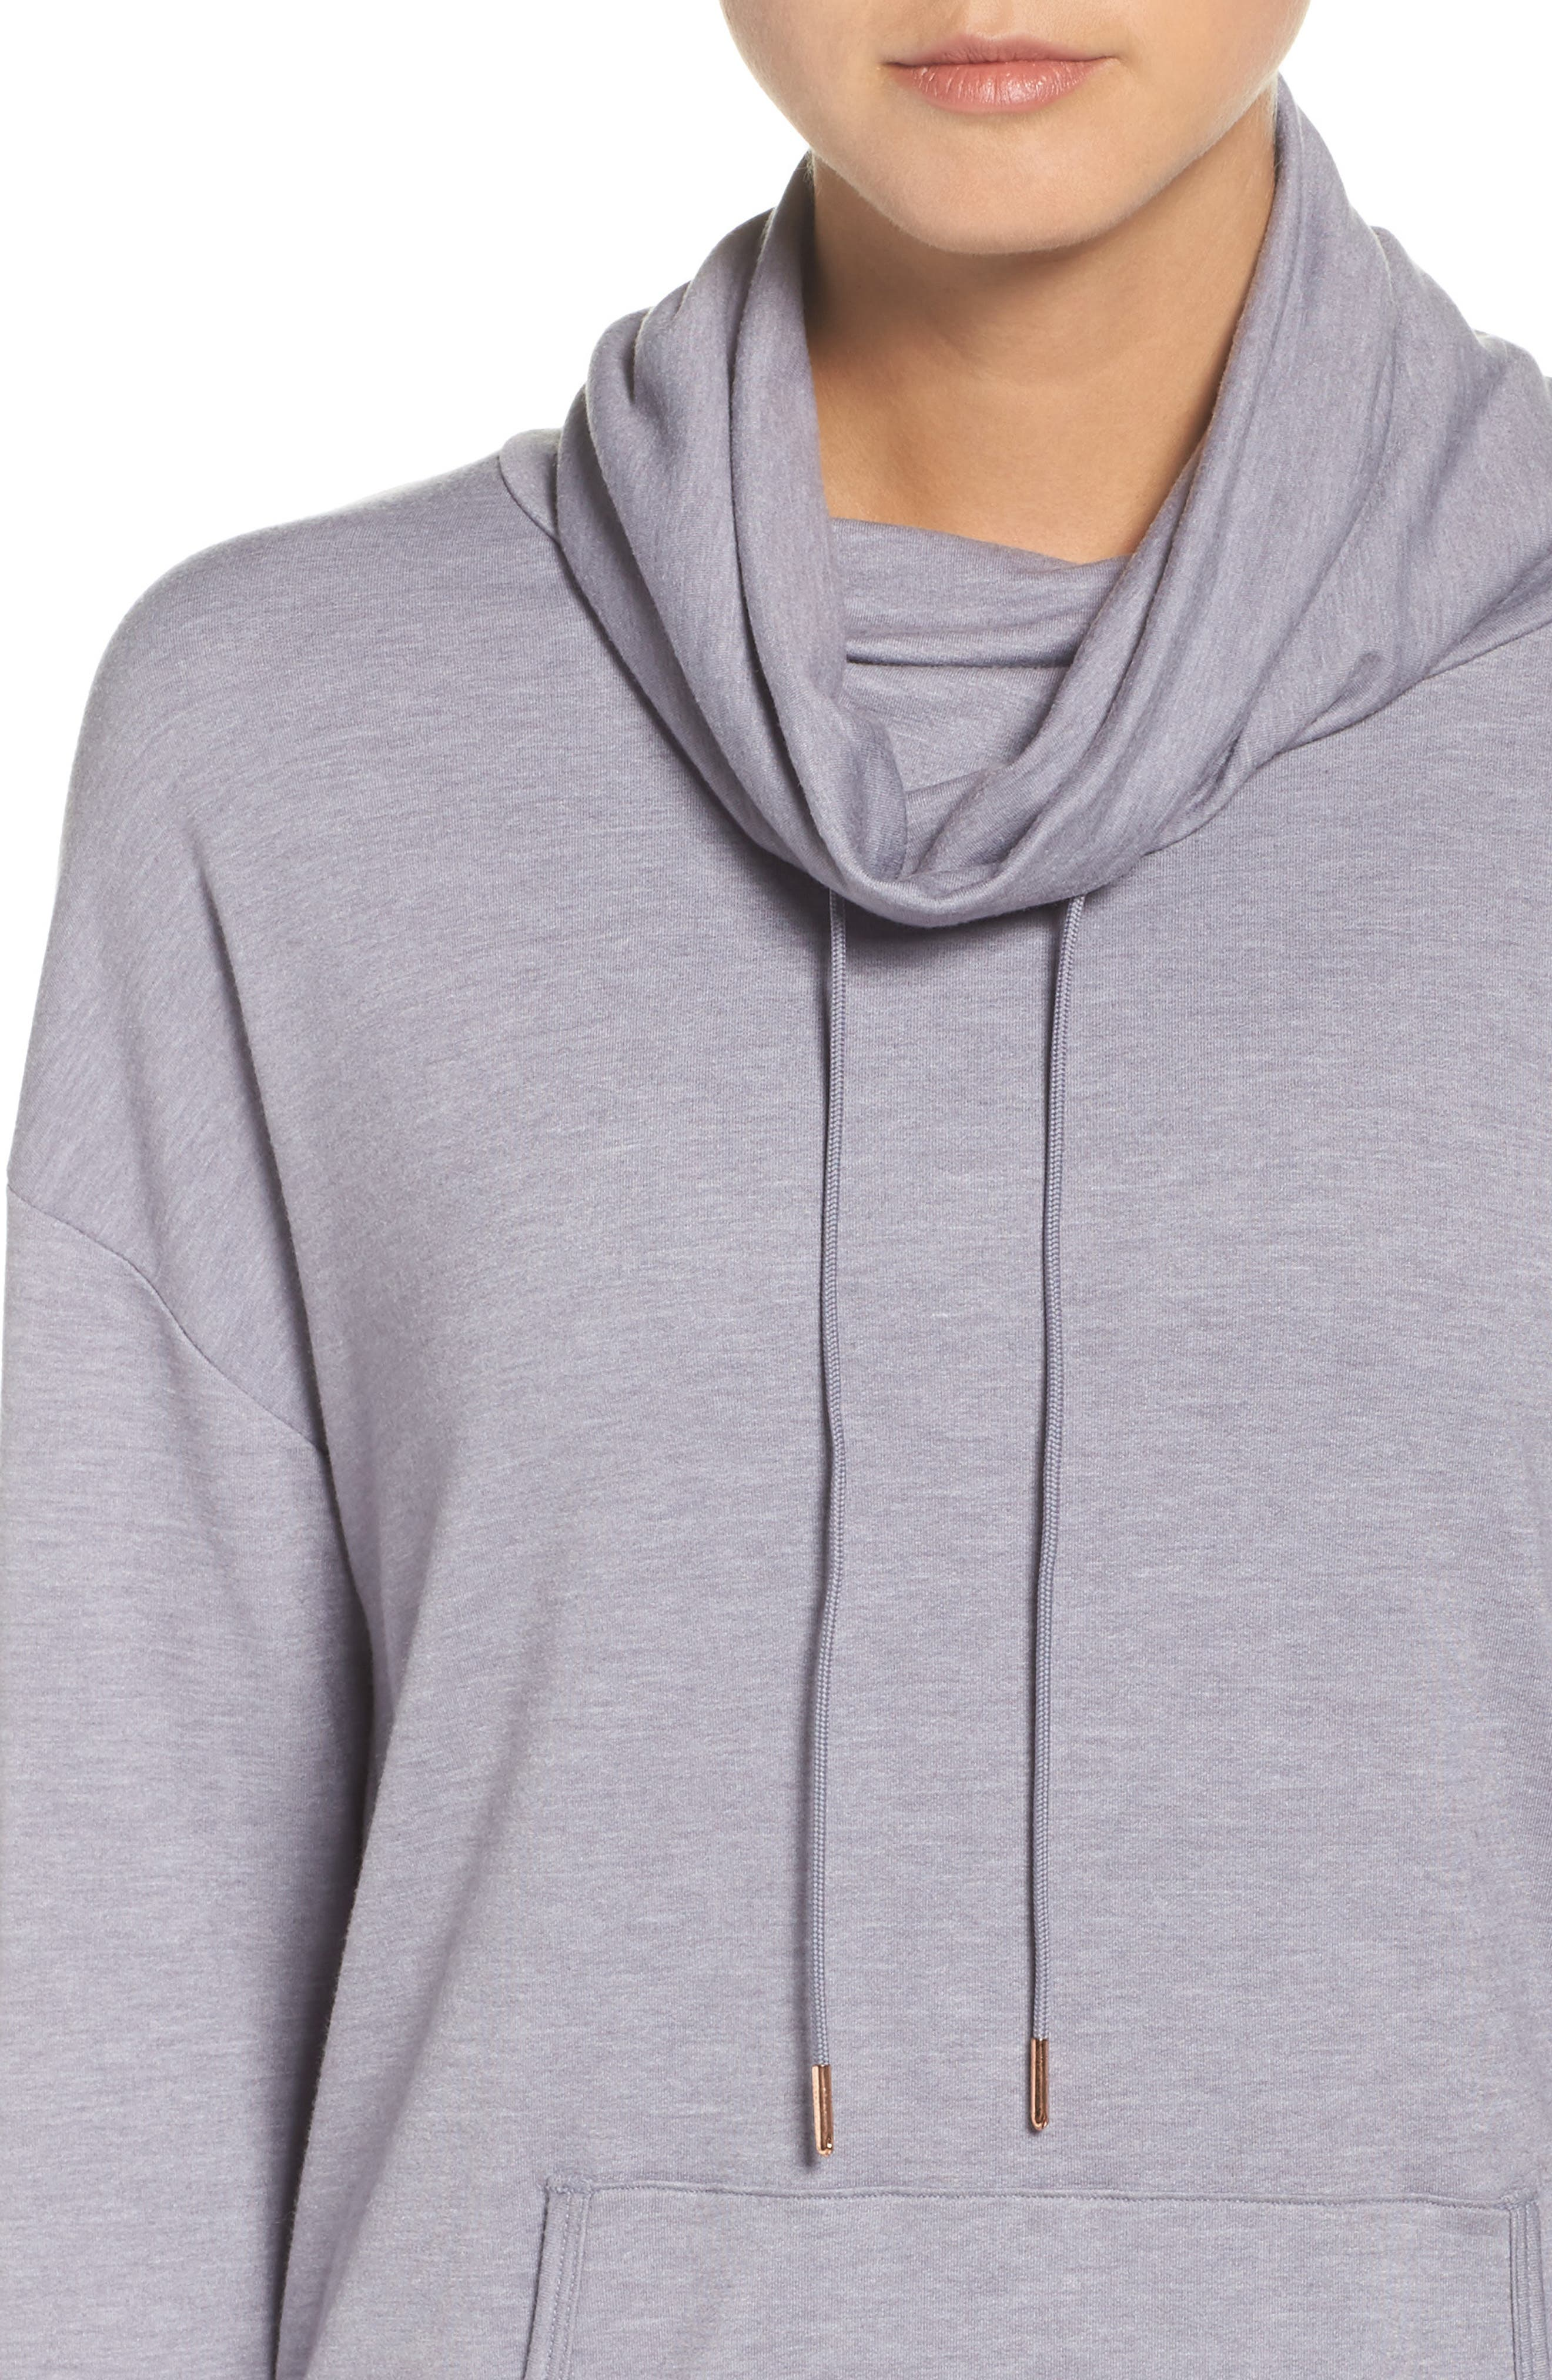 Jersey Pullover,                             Alternate thumbnail 12, color,